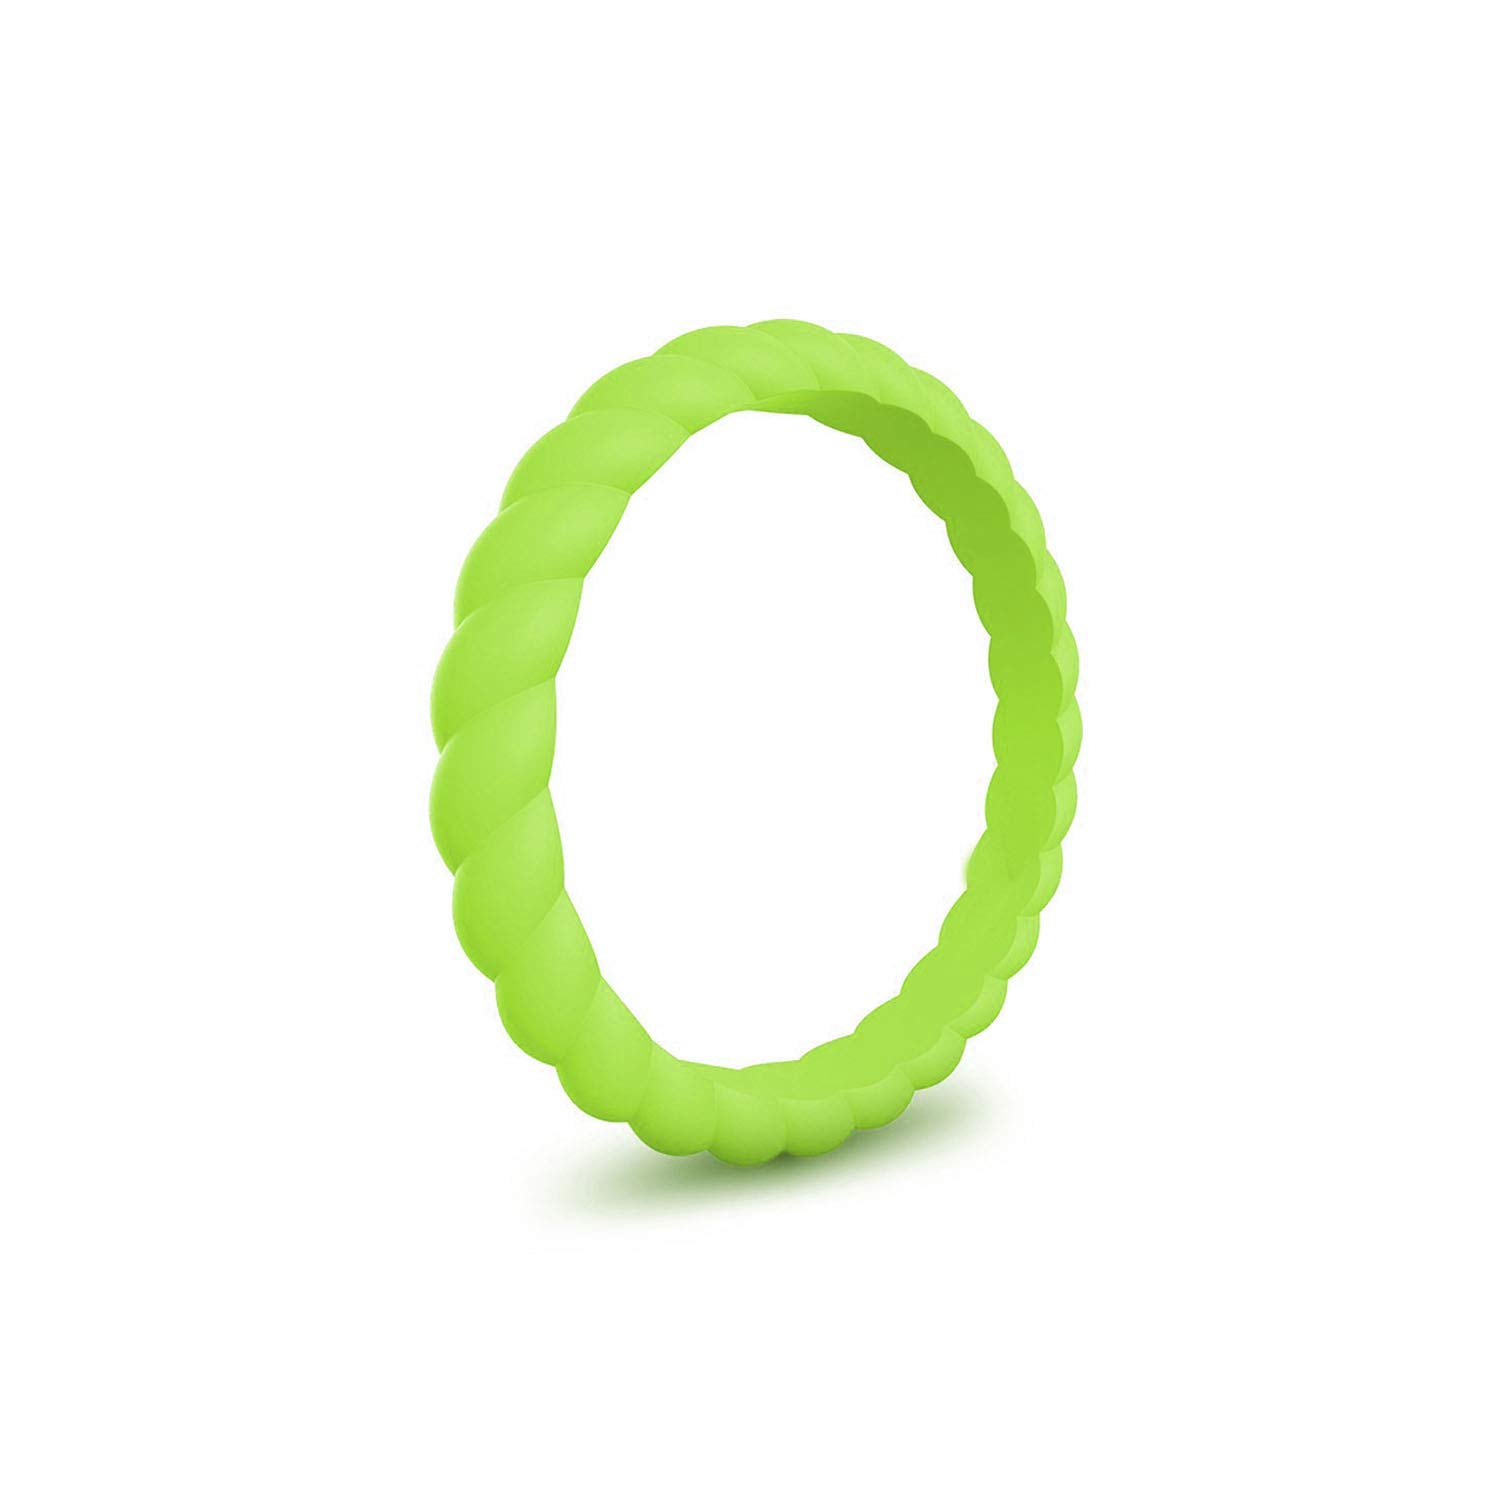 Ytb-home Silicone Rings Thin And Braided Hypoallergenic Flexible Twist Rubber Finger Ring For Women Wedding Rings,6,Grass Green